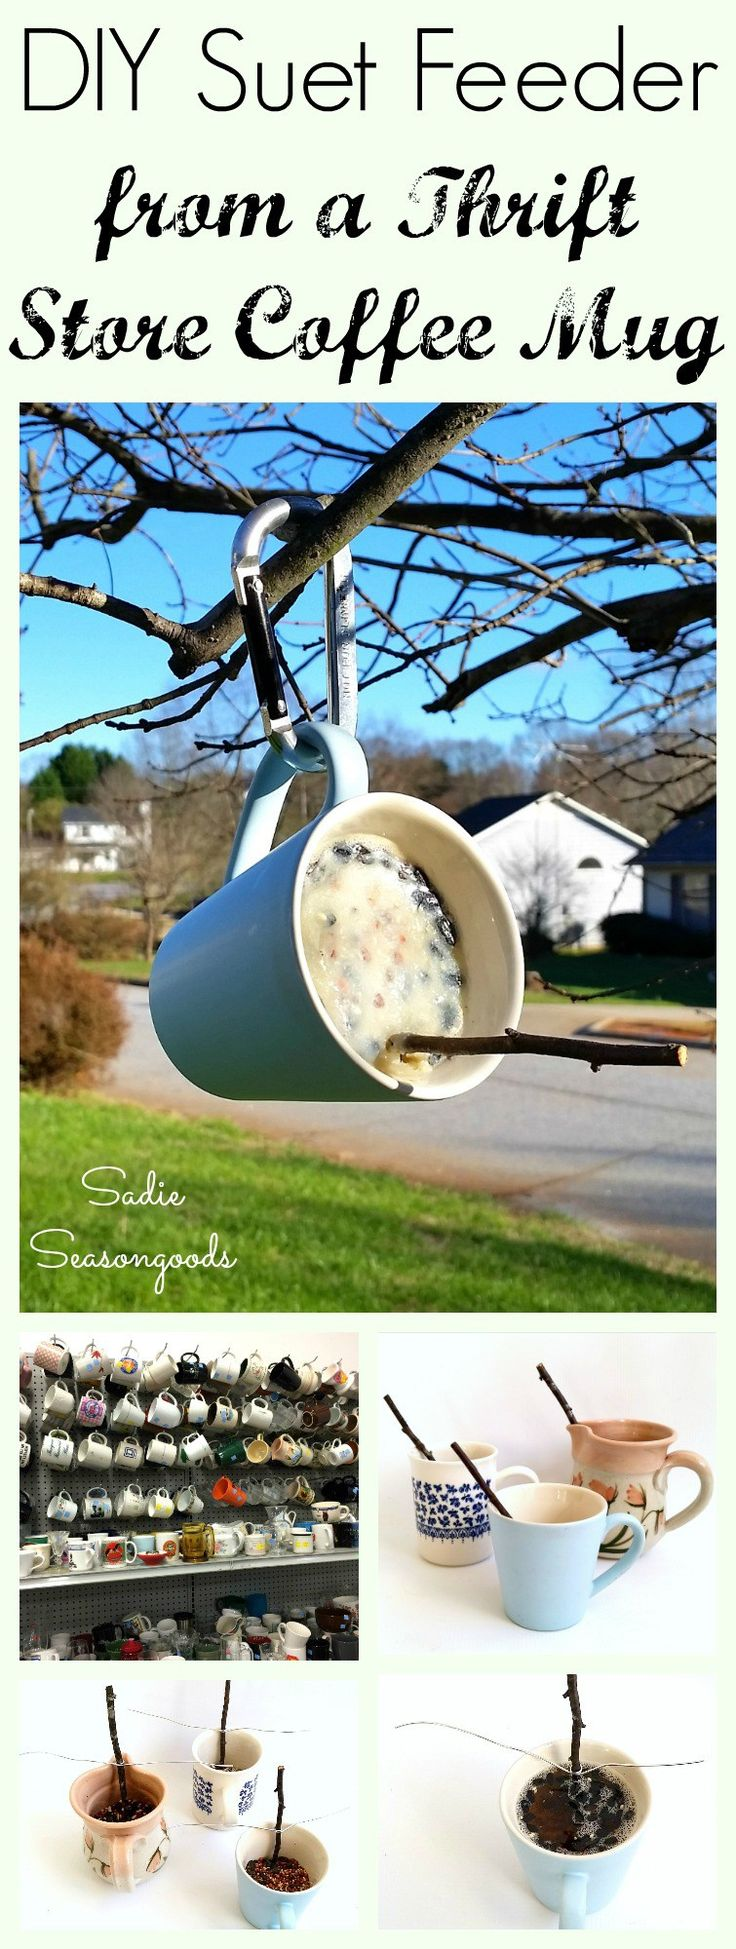 How to make a suet bird feeder for the winter yard and garden with a repurposed and upcycled thrift store coffee mug by Sadie Seasongoods / www.sadieseasongoods.com